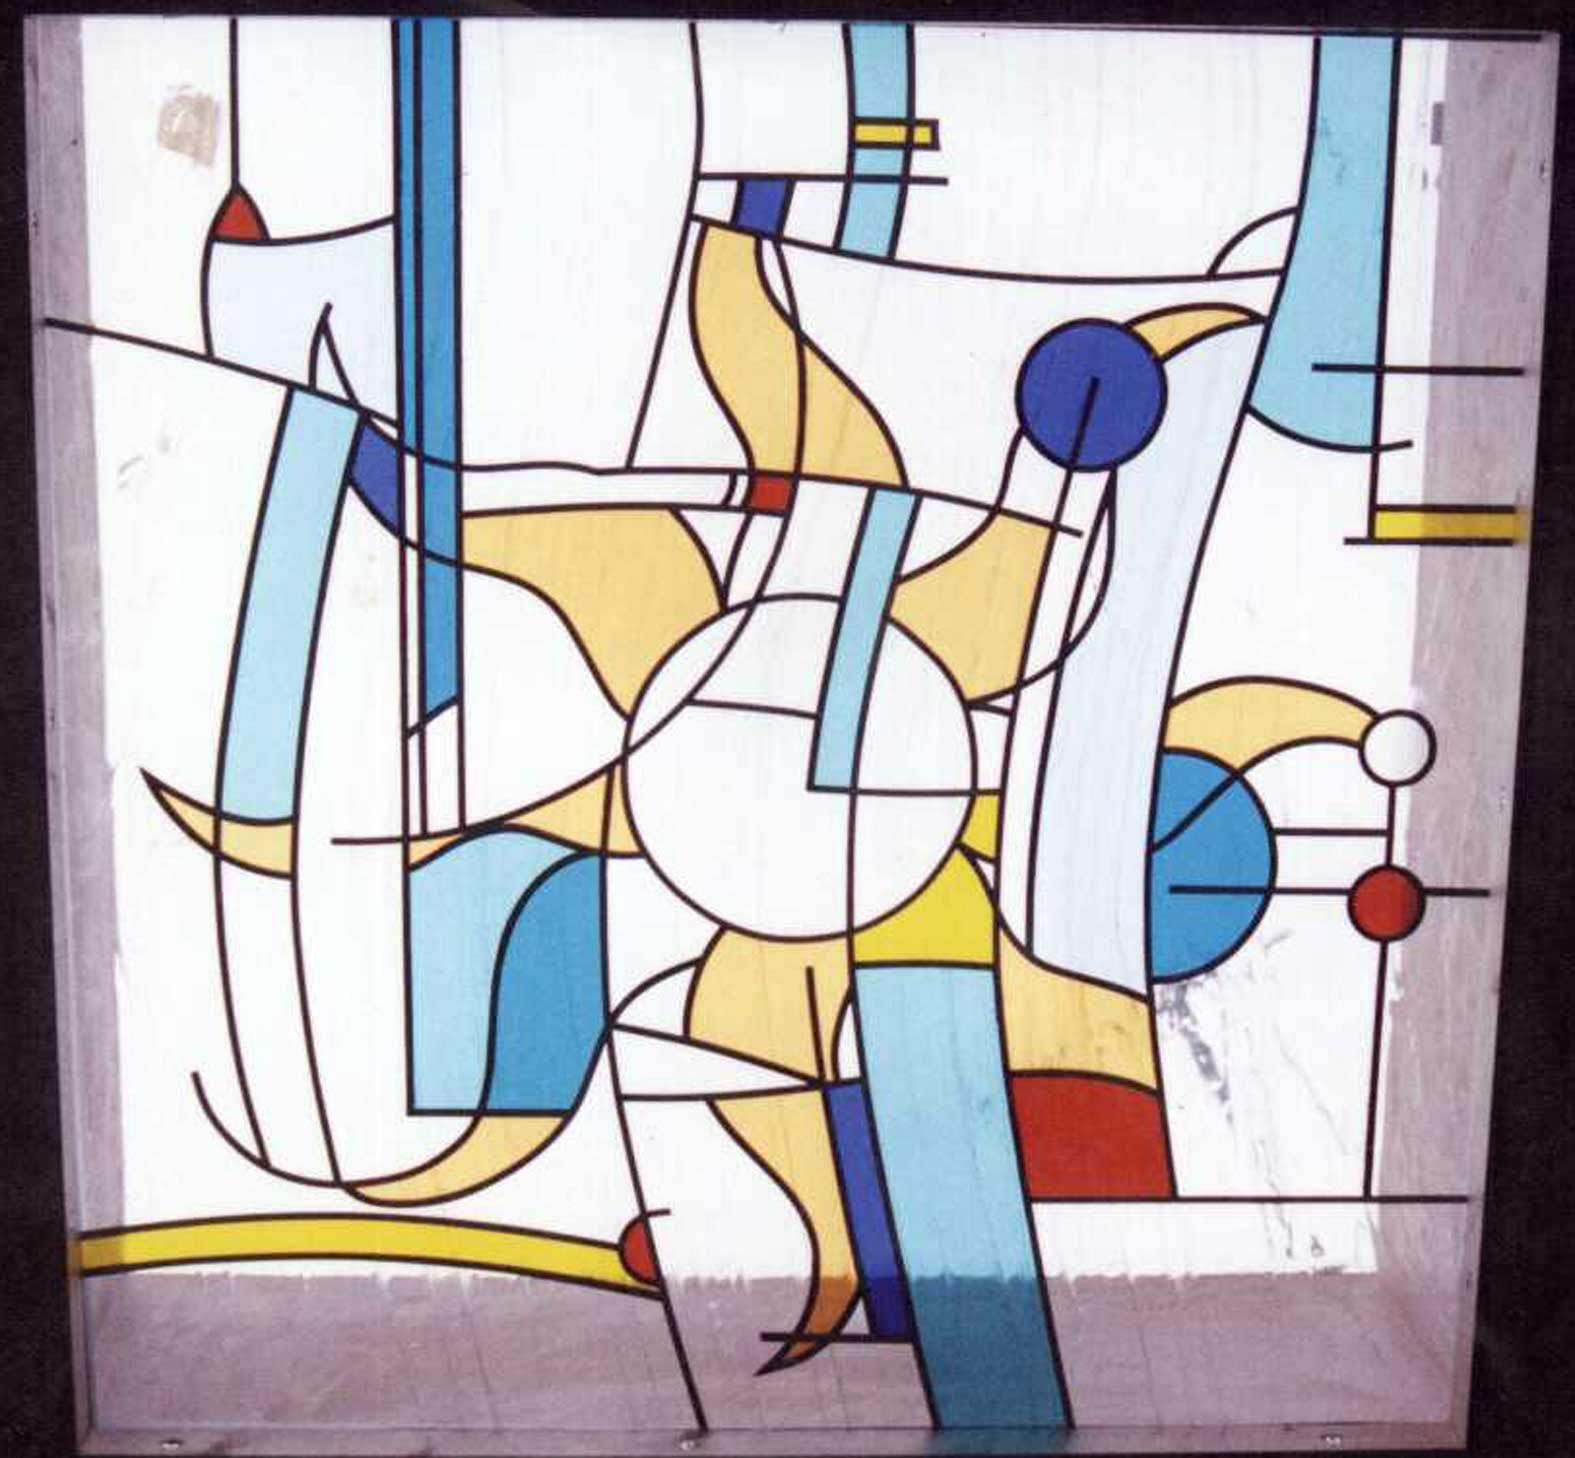 Leaded glass designs for windows - Contemporary Glass Design For Windows